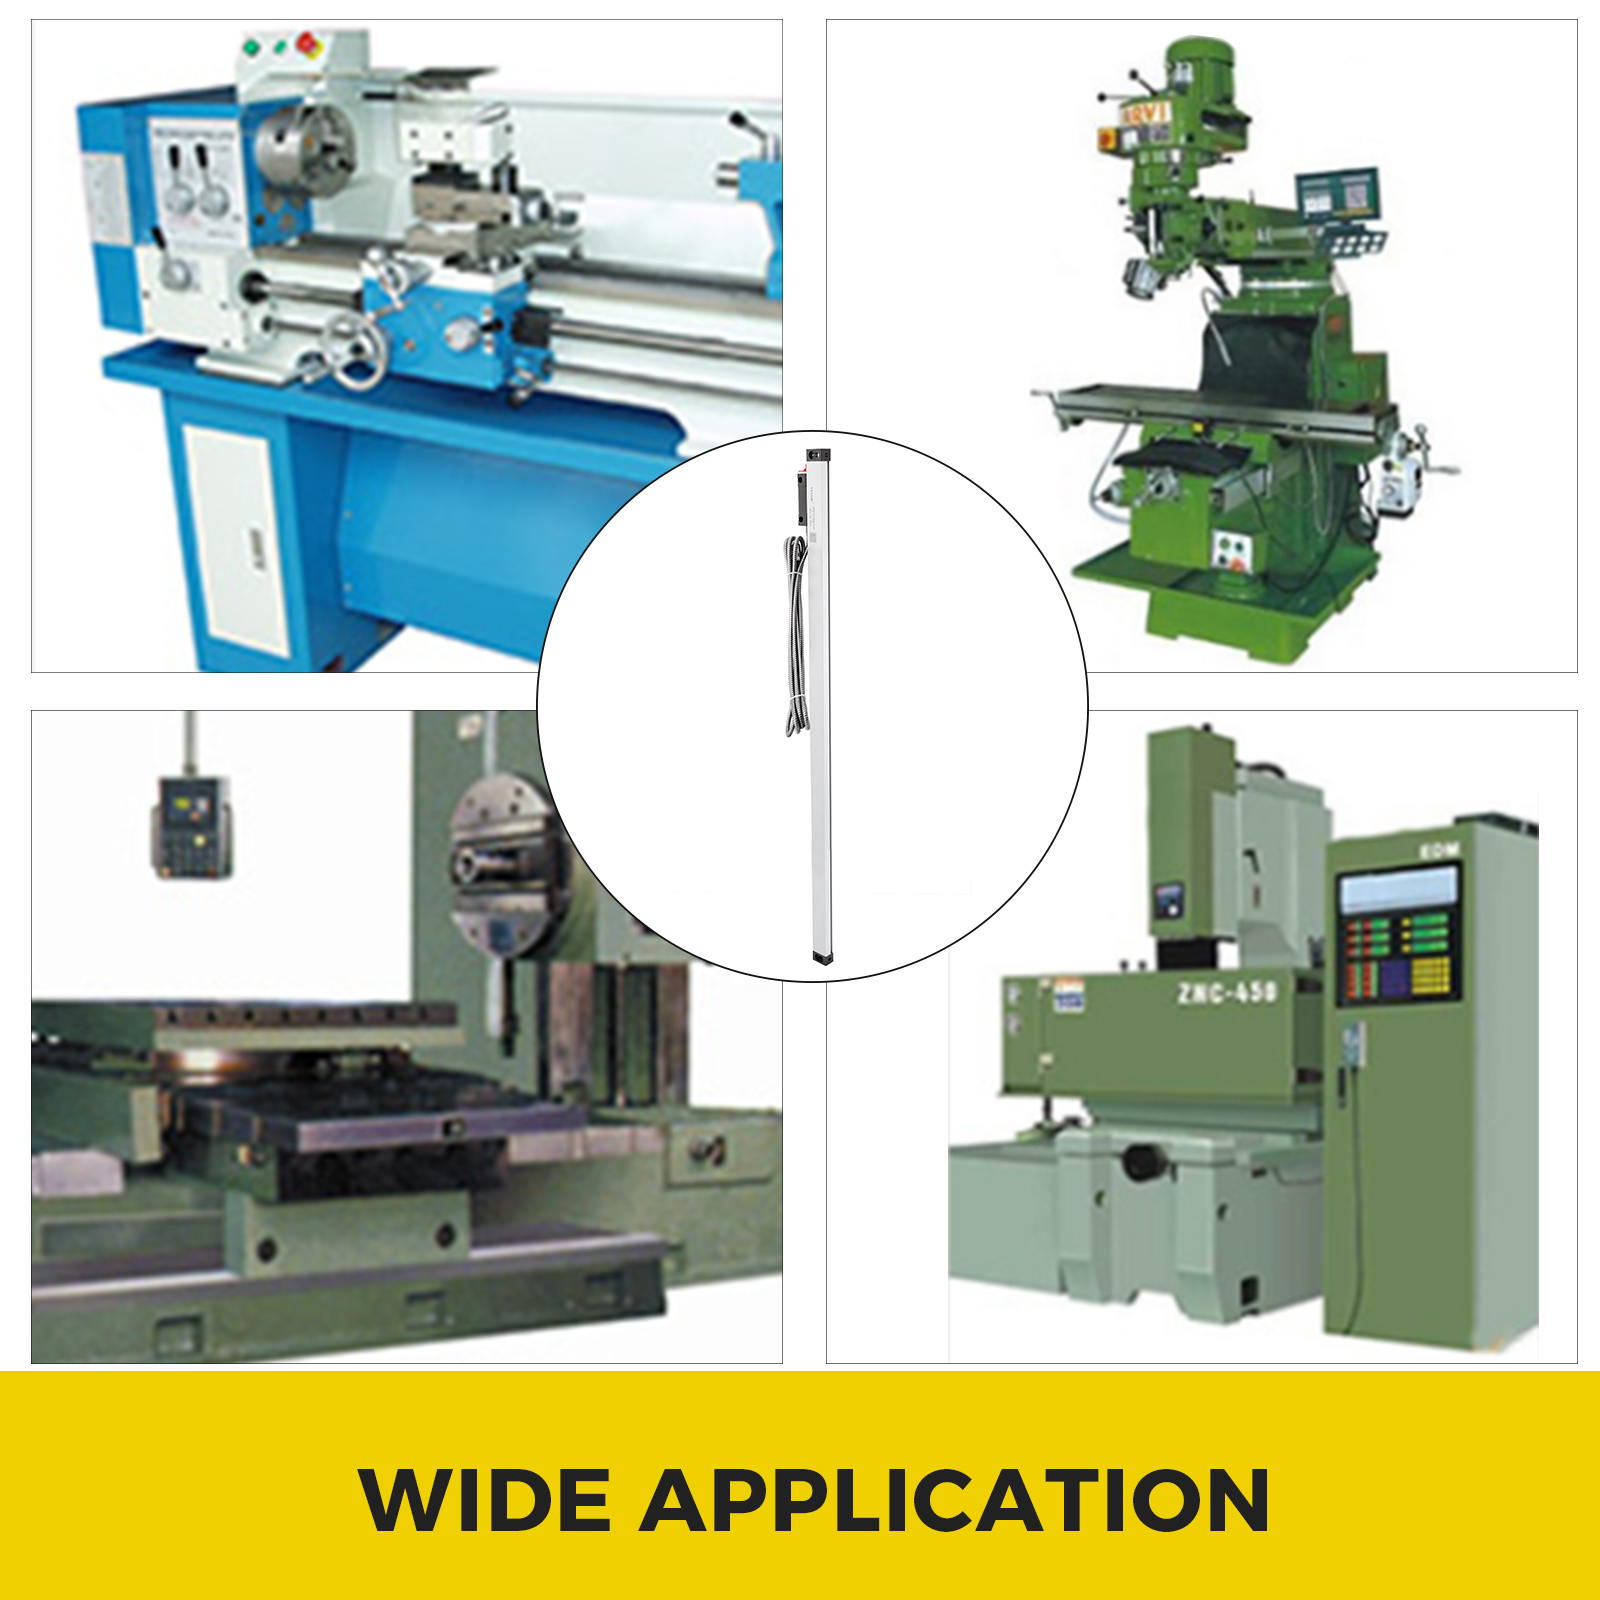 2-3-Axis-Digital-Readout-Linear-Scale-Double-Seal-5-Bearing-System-Grinding thumbnail 199